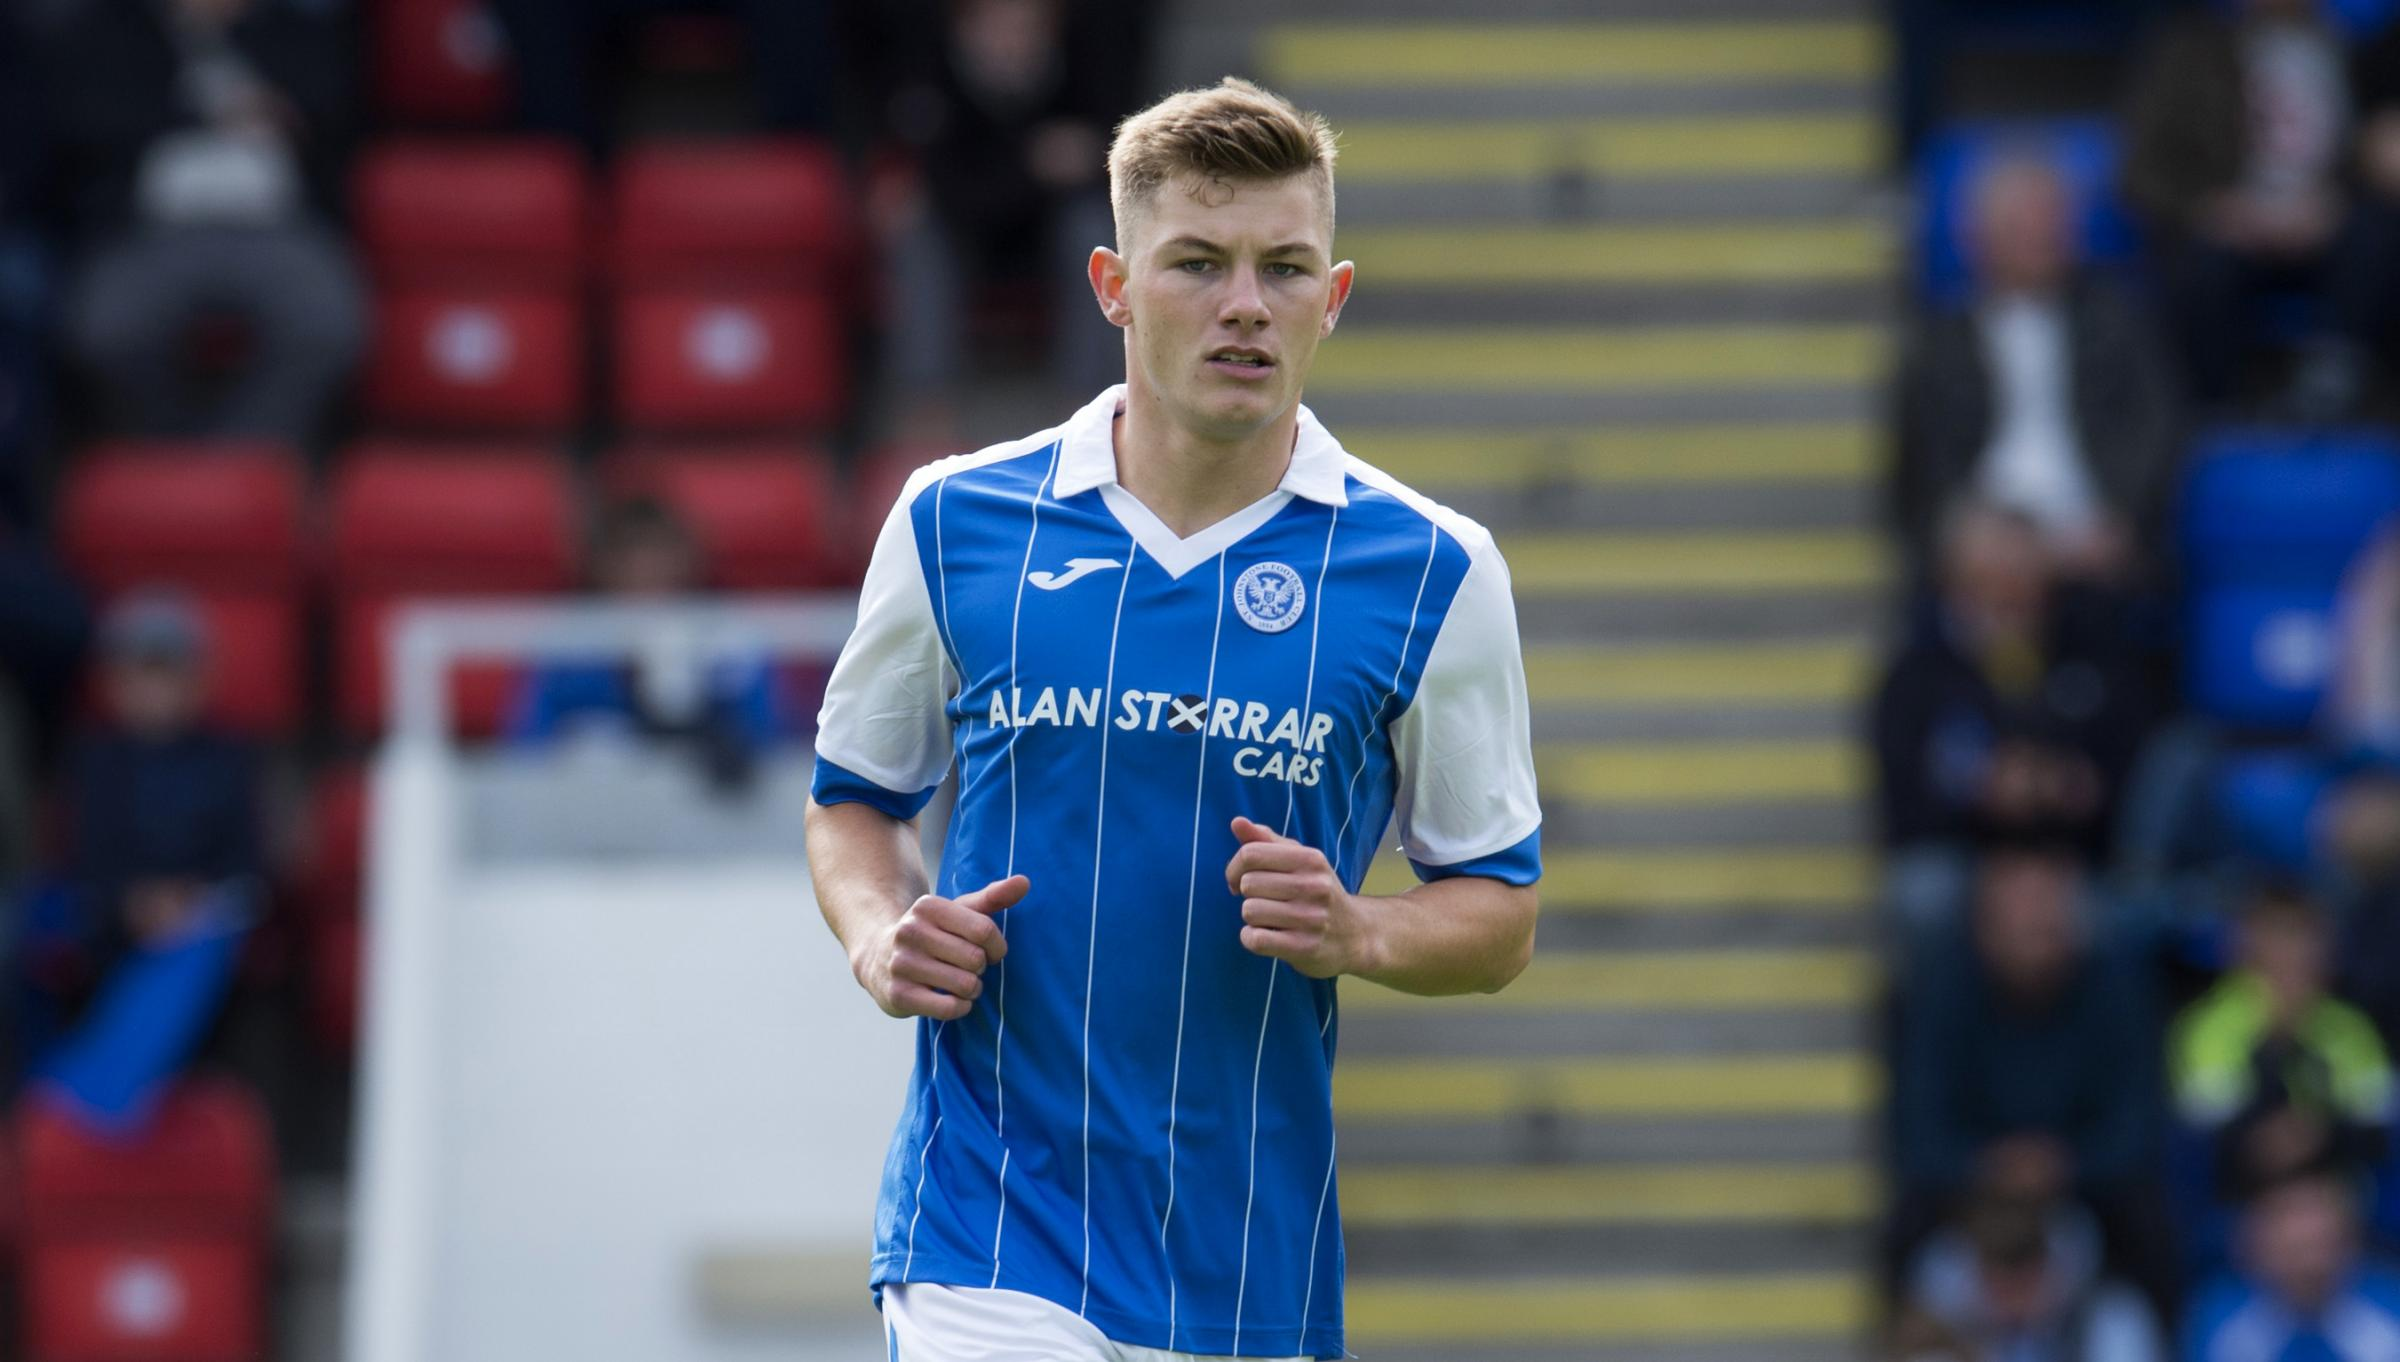 Callum Hendry is hoping to establish himself in the St Johnstone first team this season   Photograph: SNS